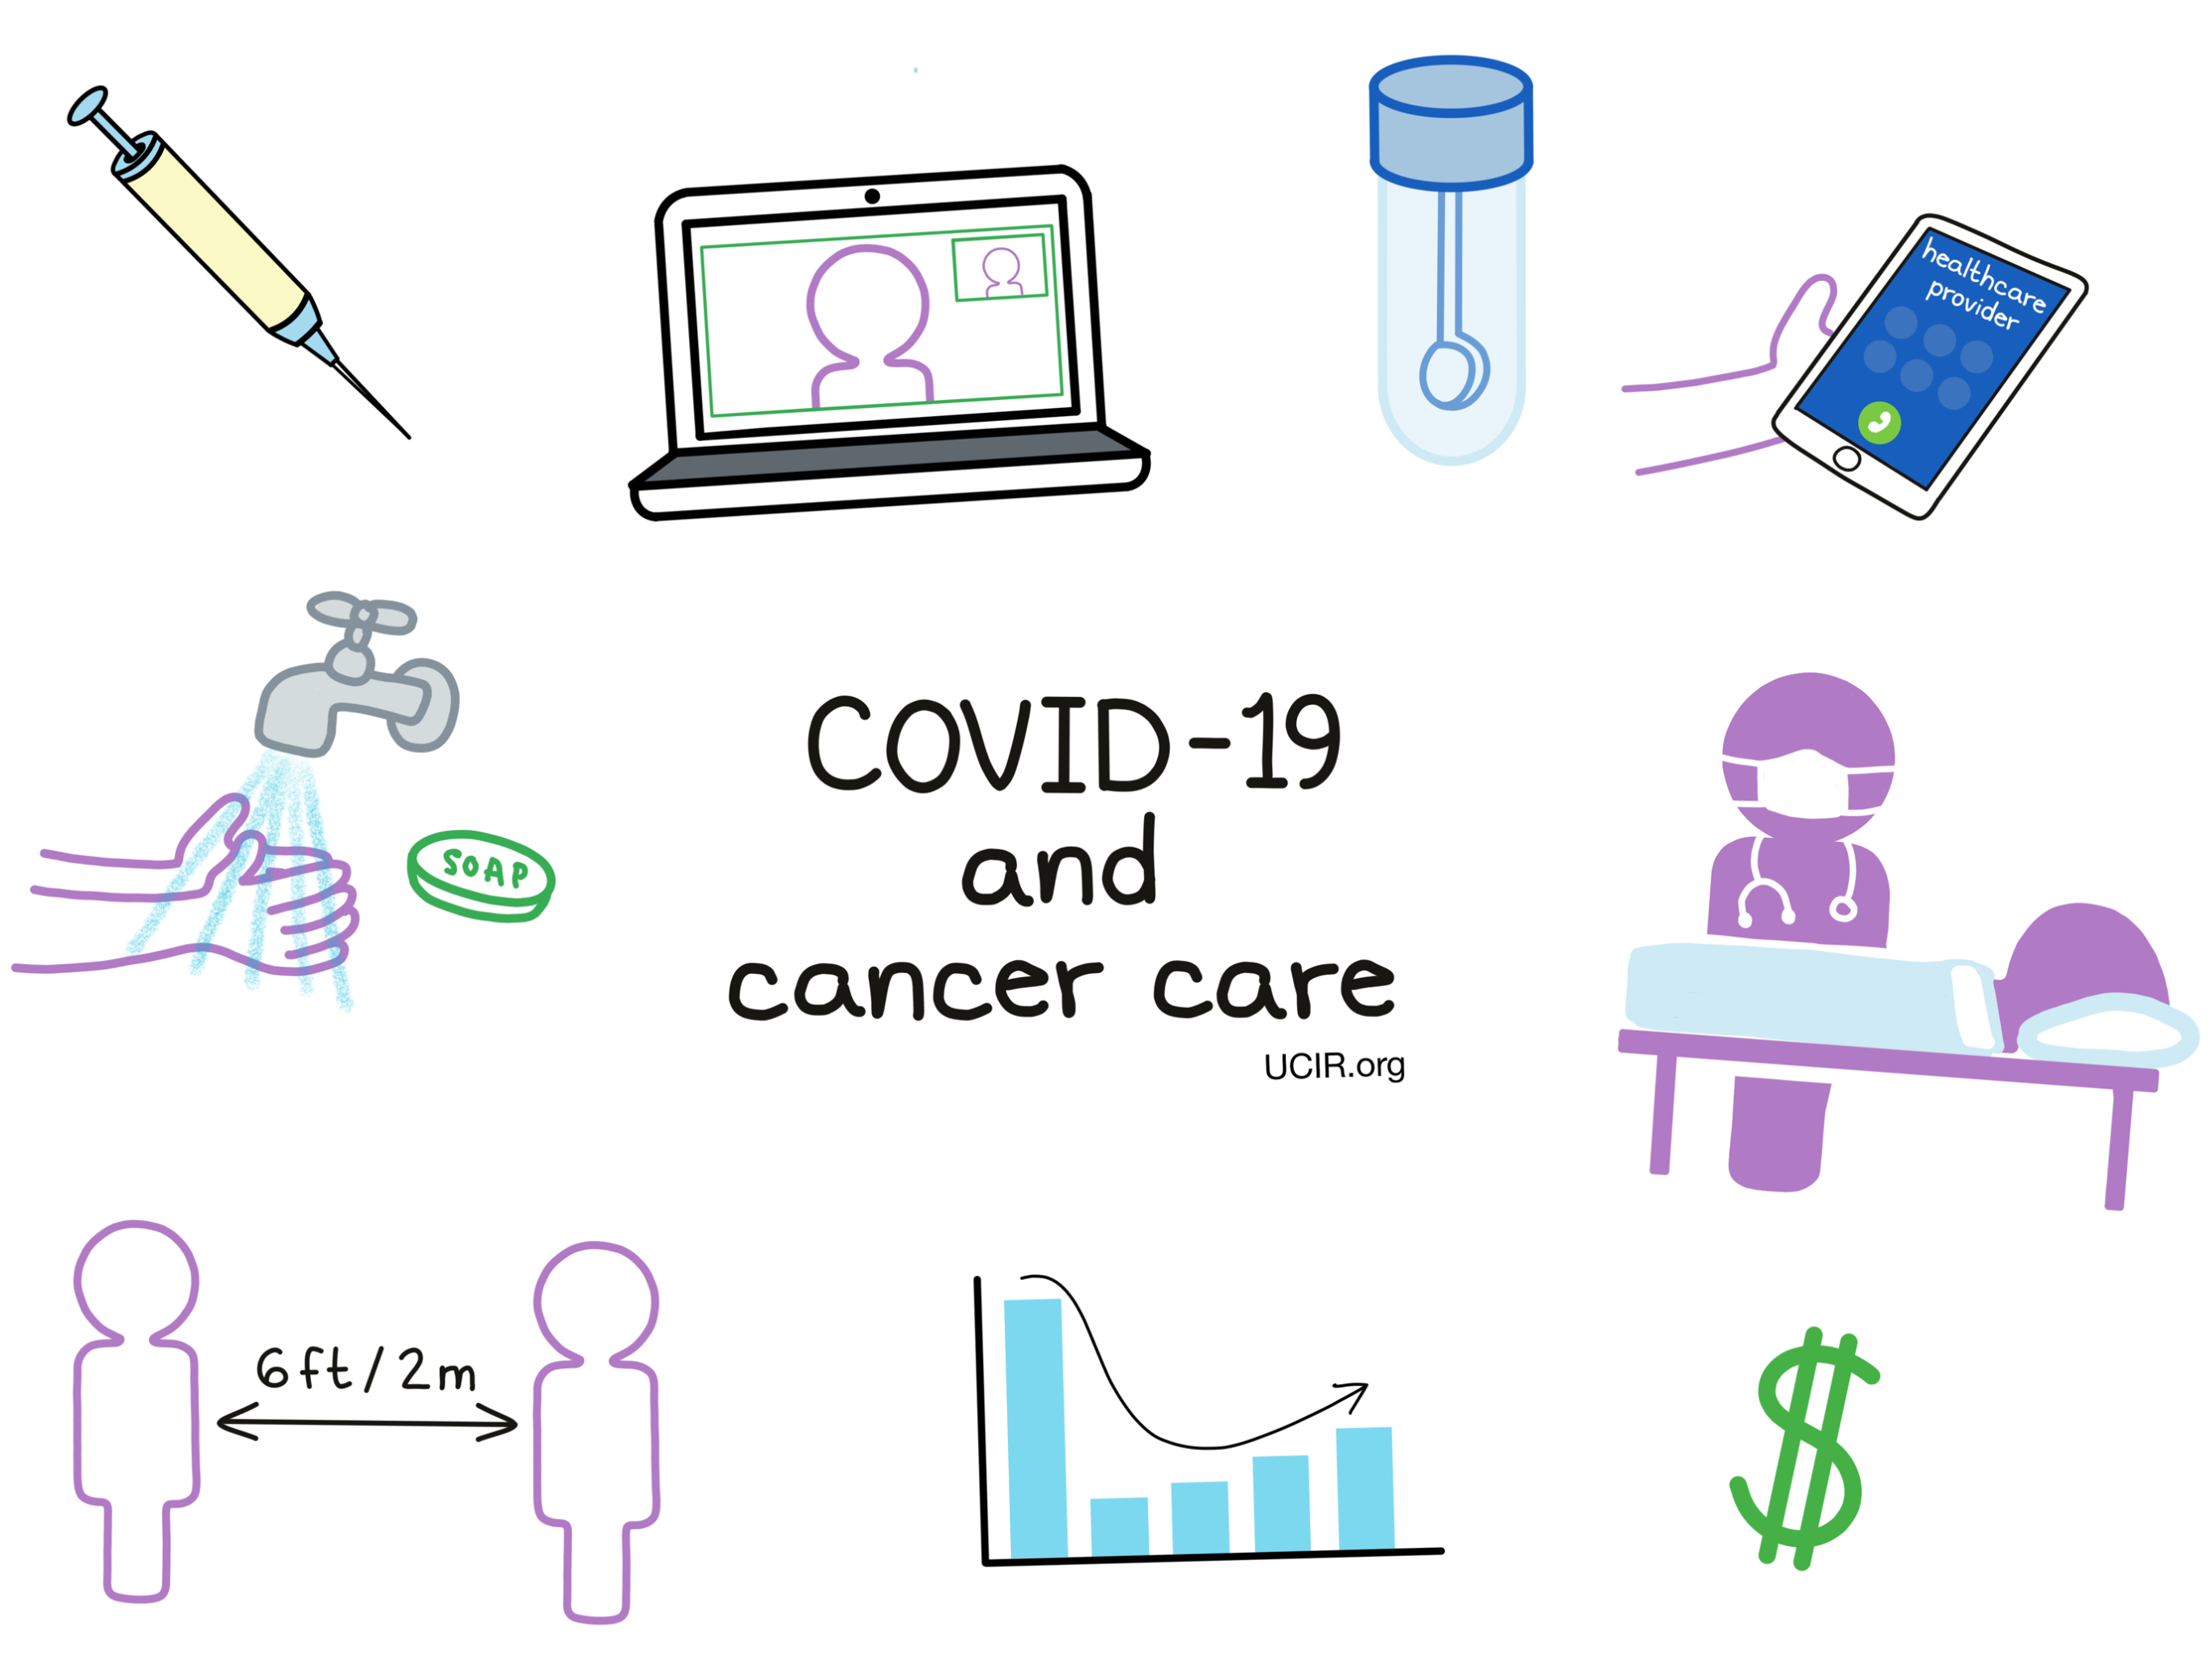 Cancer care in the age of COVID-19